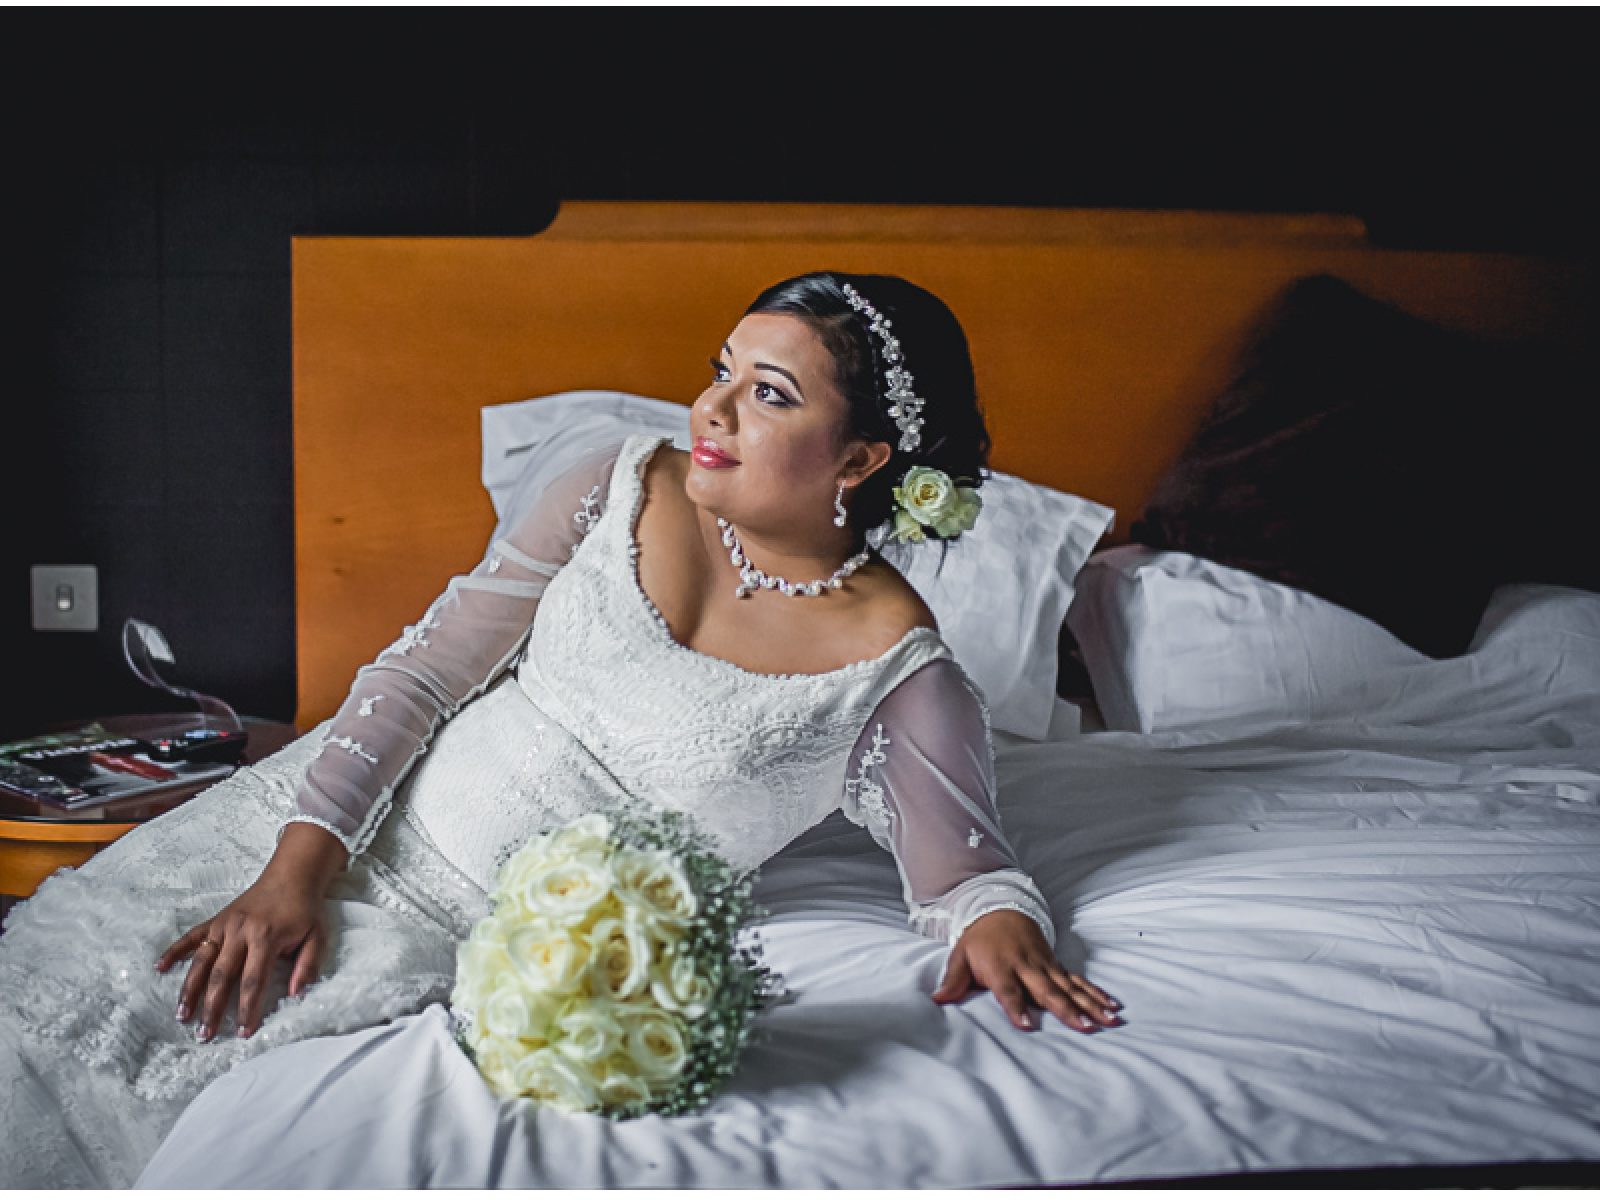 151 1600x1200 - Darshani and Anthony - wedding photographer in London